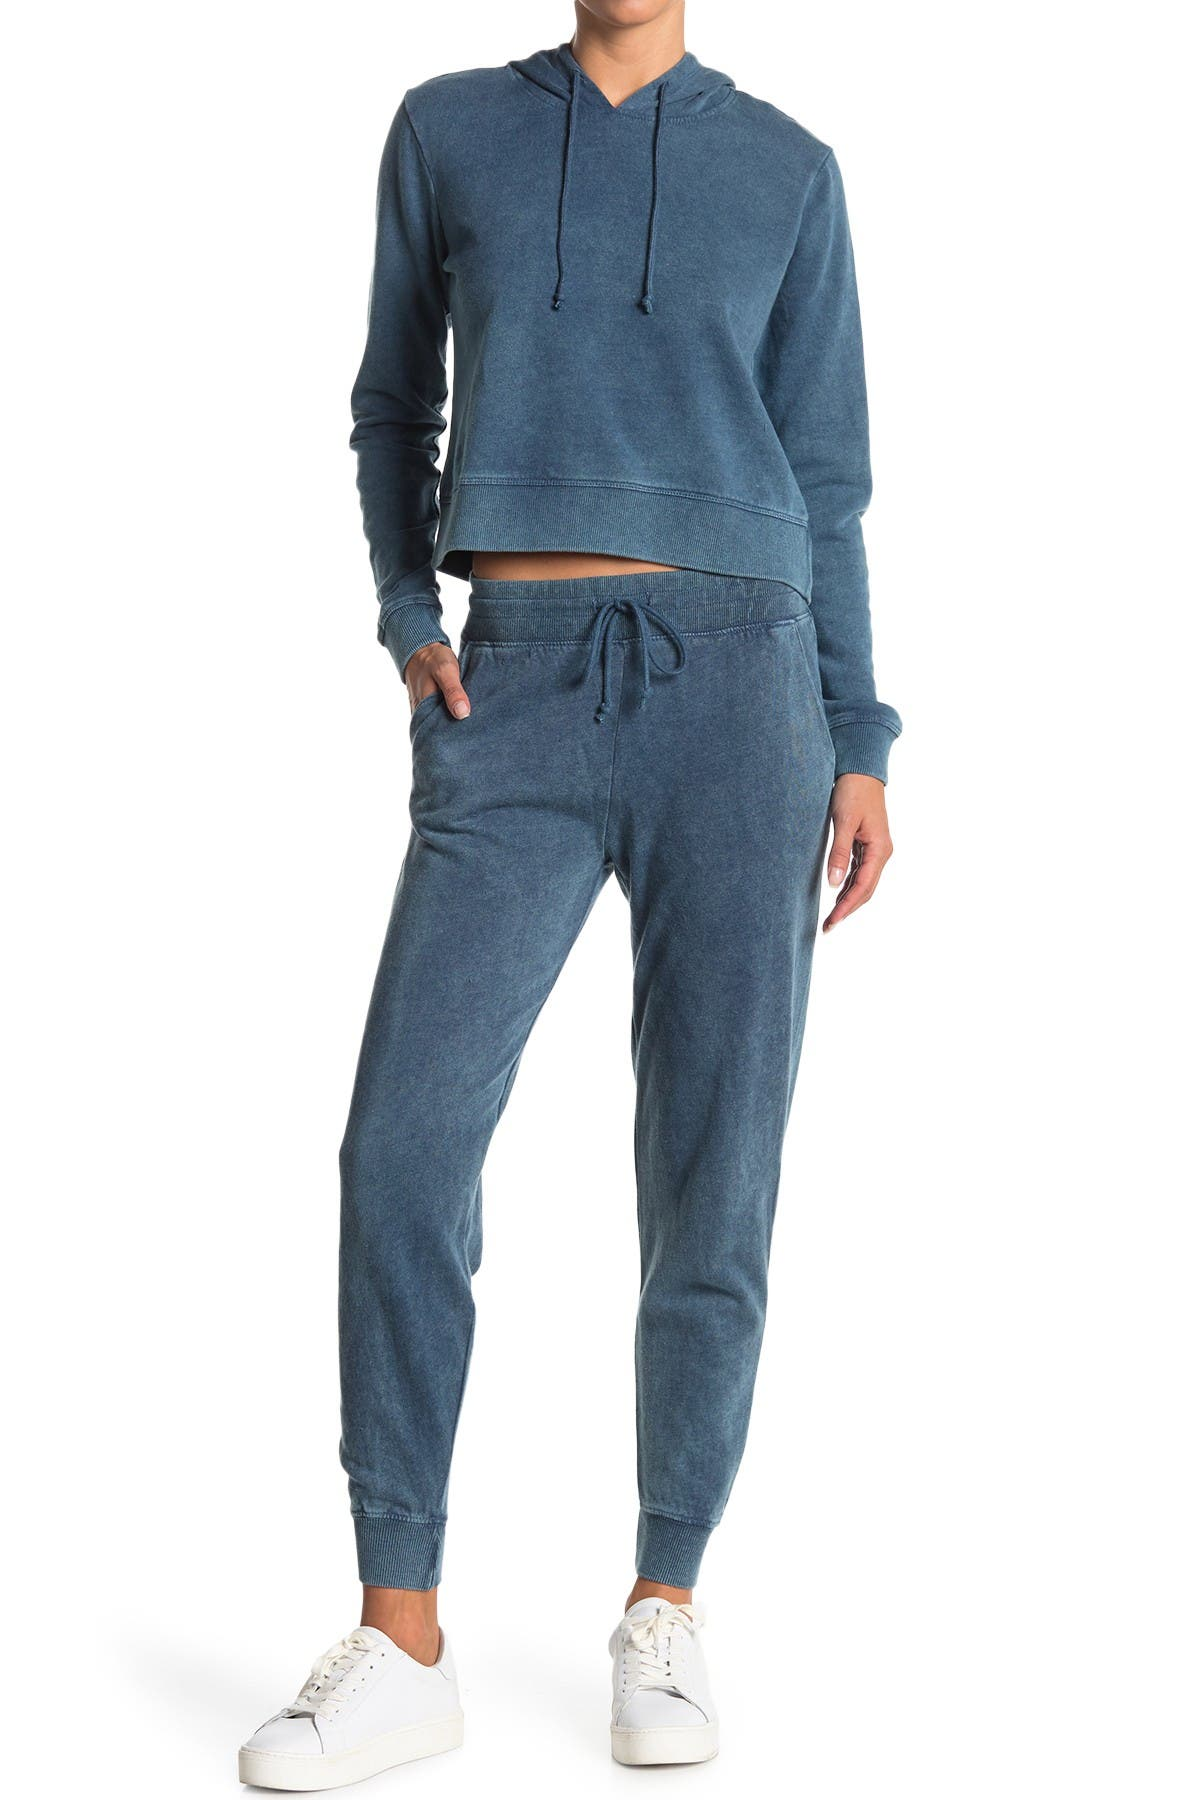 Image of Threads 4 Thought Skinny Mineral Wash Joggers